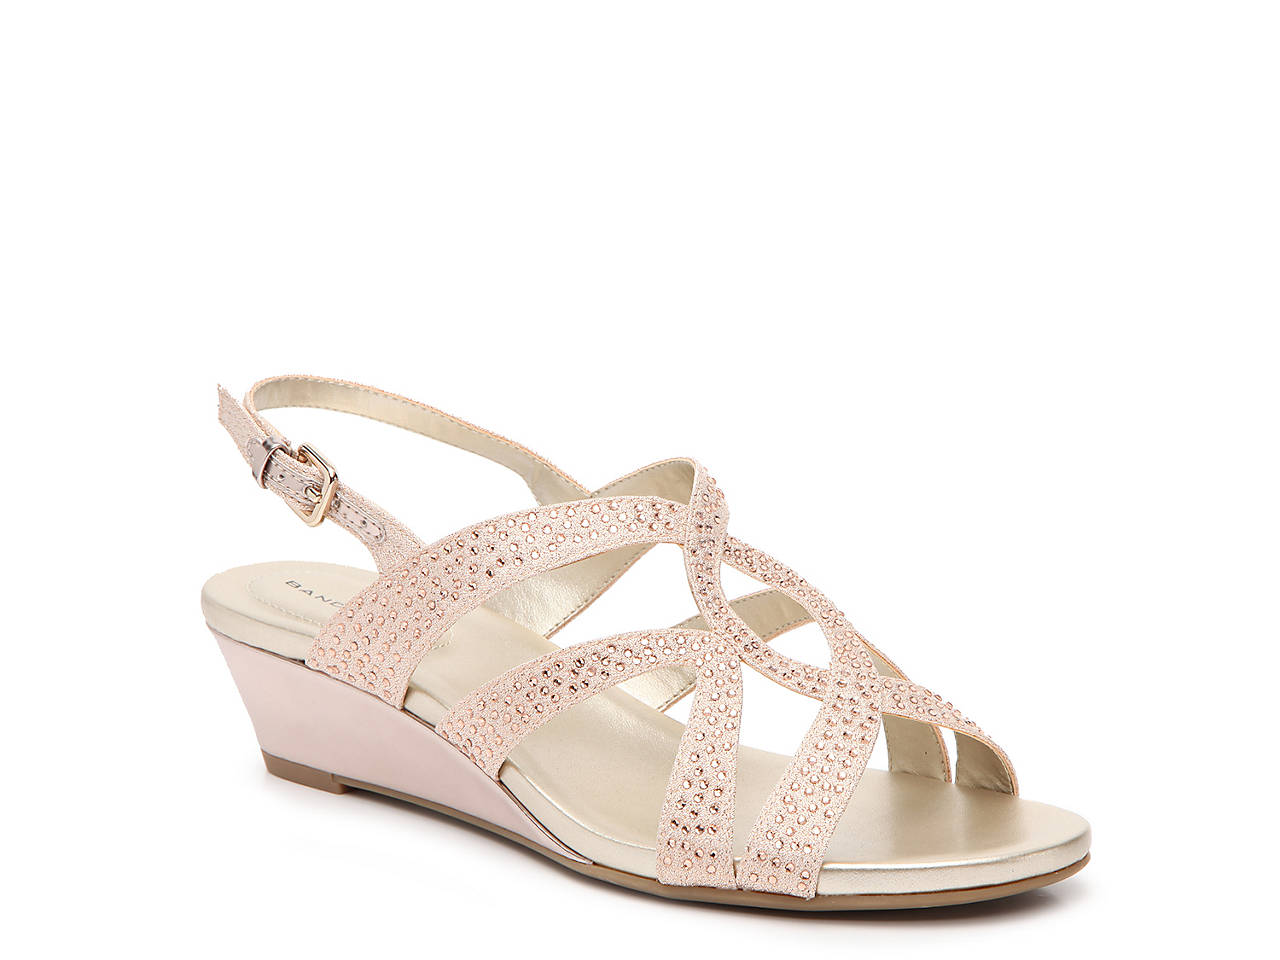 d916cf0ef0 Bandolino Giove Wedge Sandal Women's Shoes | DSW